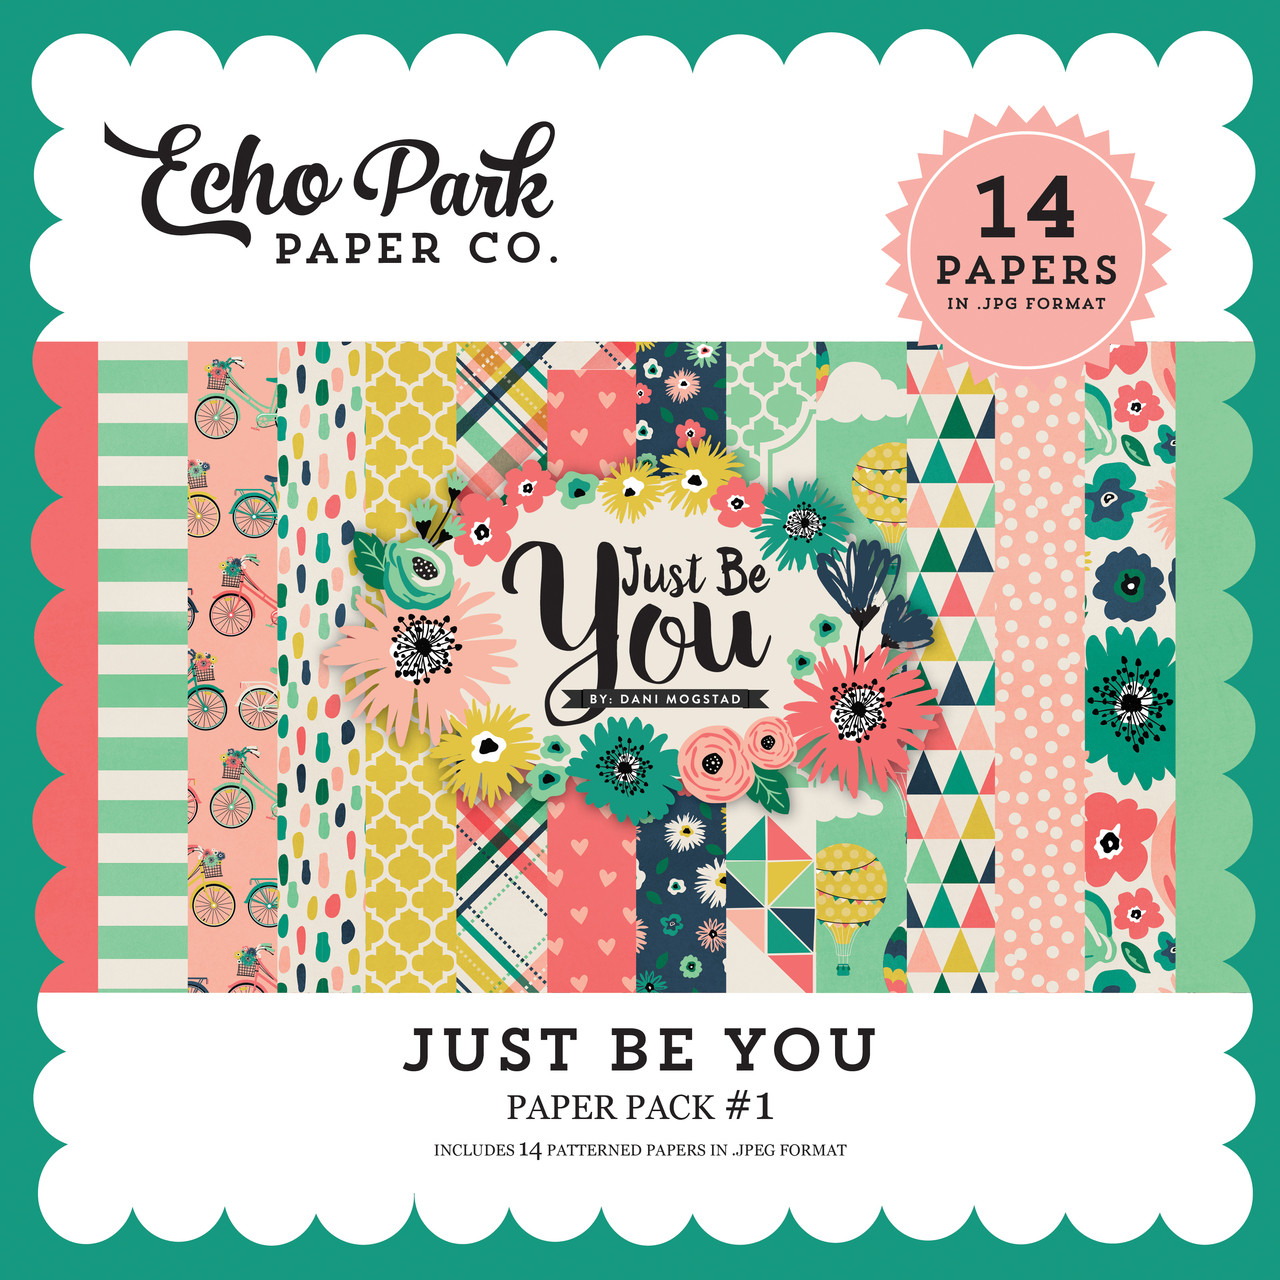 Just Be You Paper Pack #1